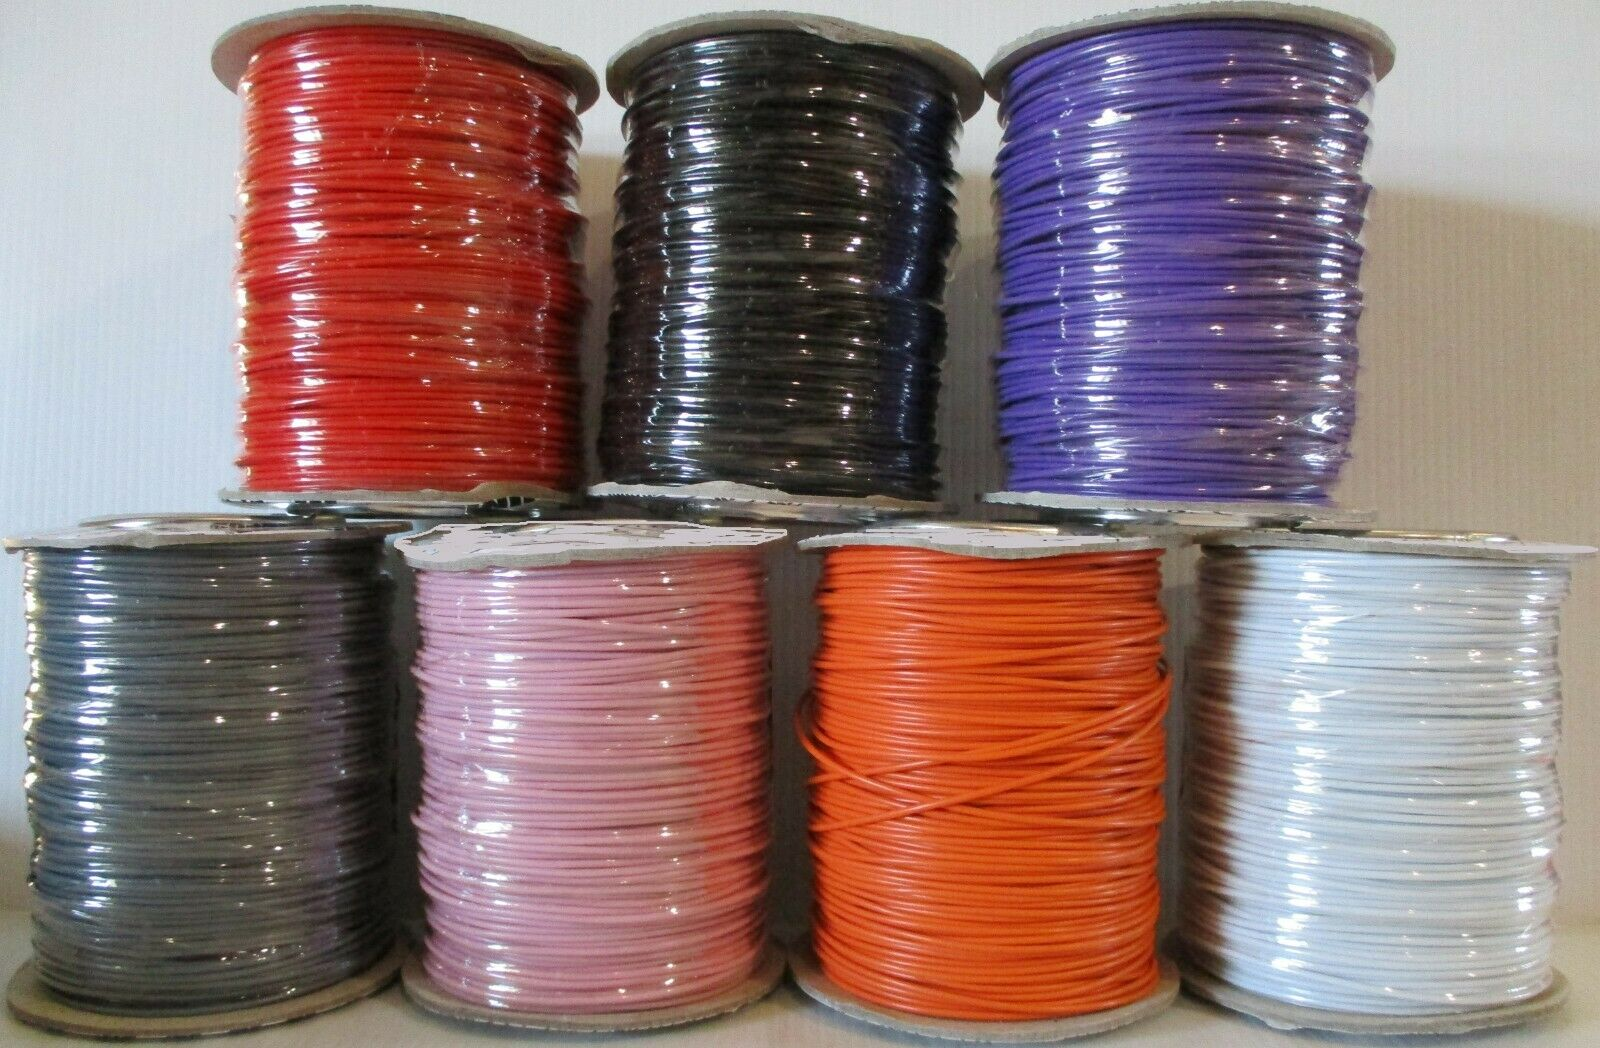 Model Railway Layout Wire Roll 16/0.2mm 3A PICK YOUR OWN COLOUR + LENGTH